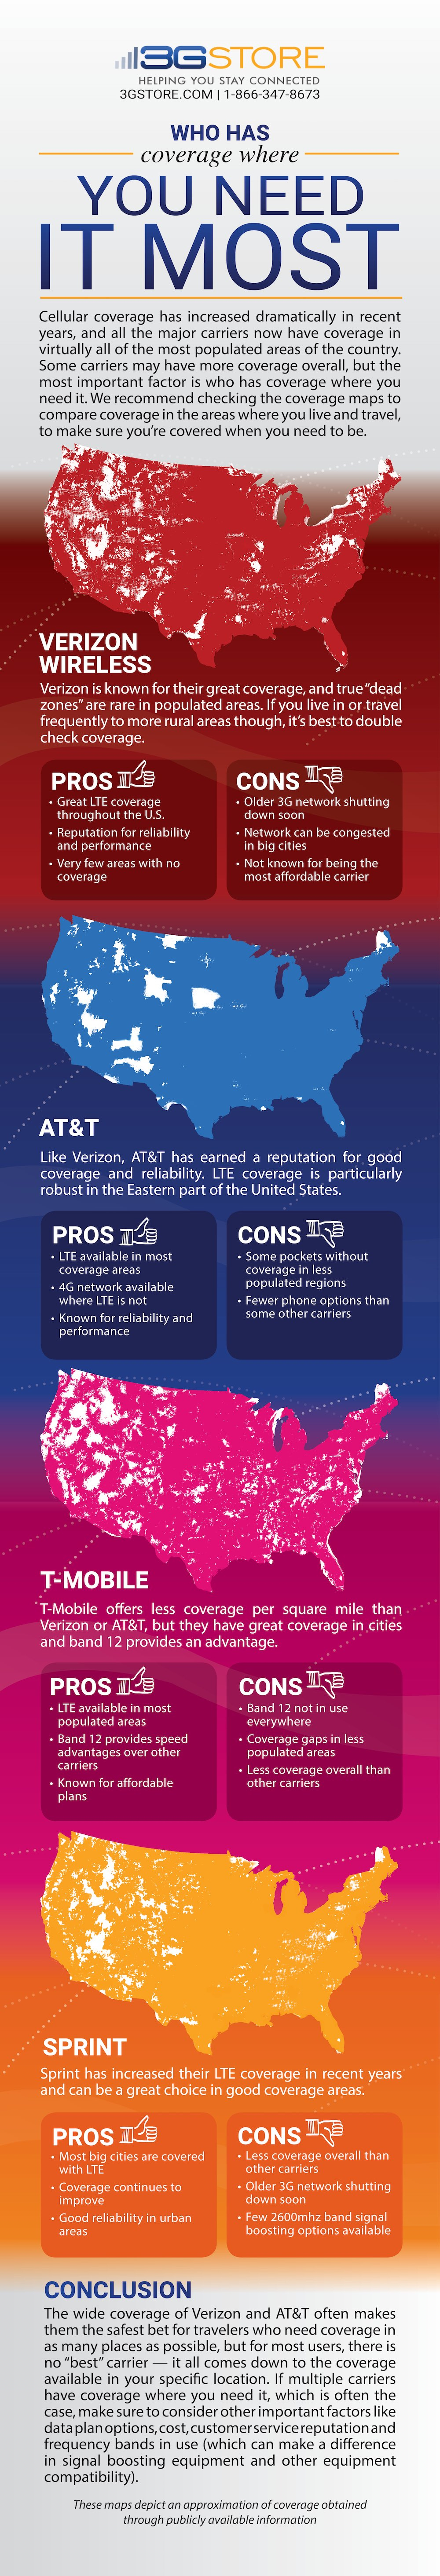 3G/4G Coverage Maps - Verizon, At&t, T-Mobile And Sprint - Sprint Cell Coverage Map Texas